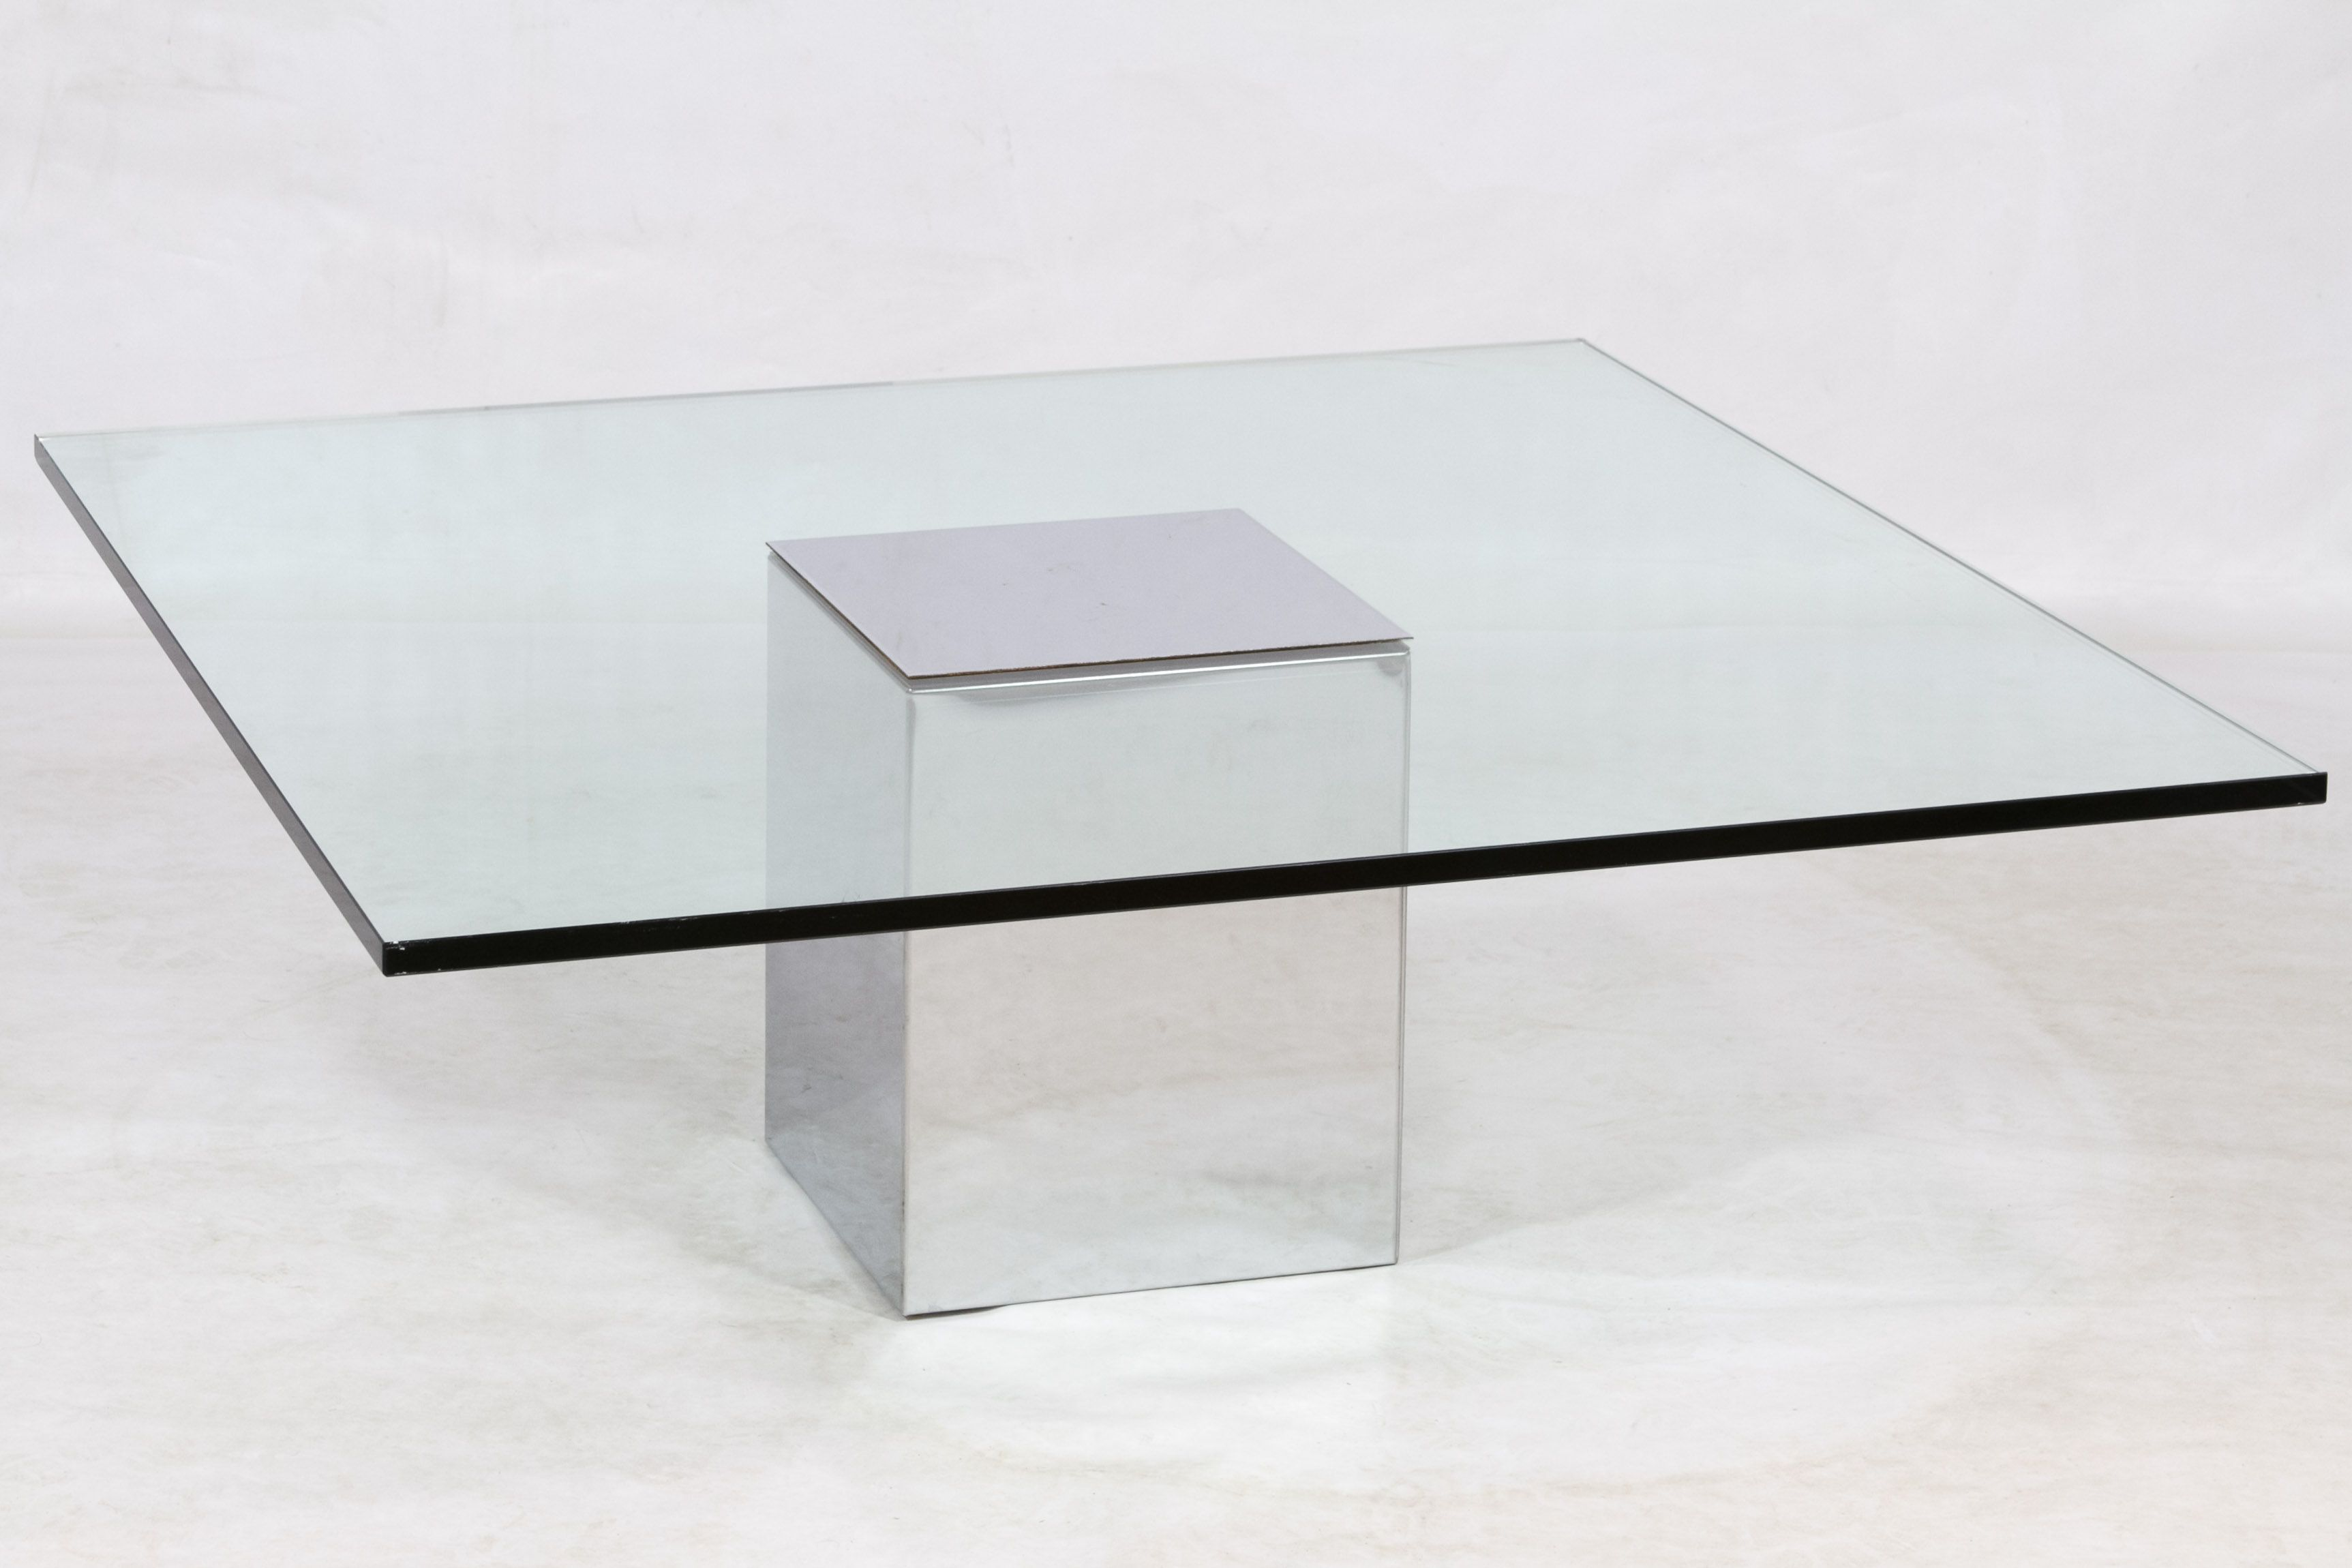 Lot 88 Glass and Chrome Coffee Table Having 3 4 inch thick glass